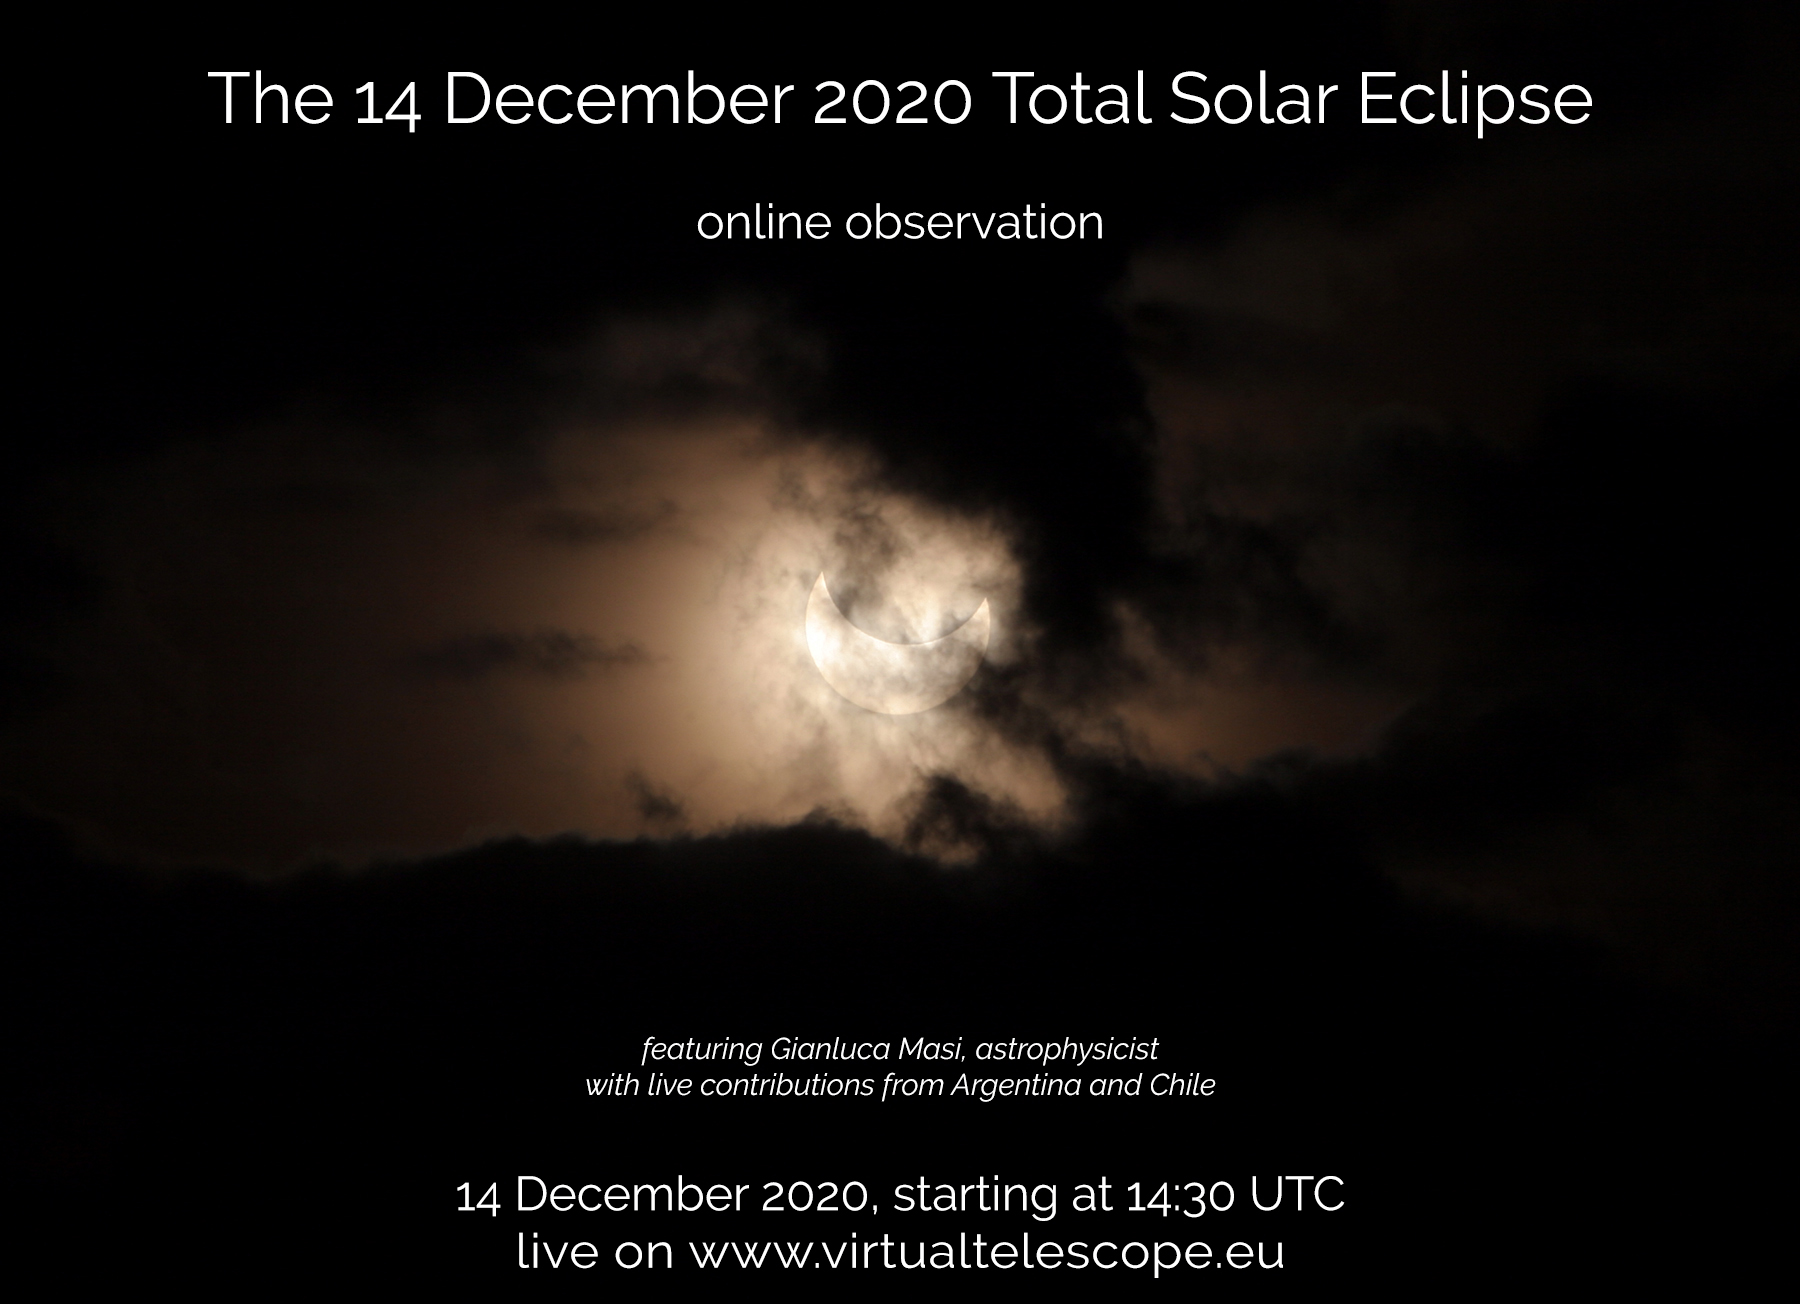 """""""14 December 2020 Total Solar Eclipse"""" - poster of the event"""